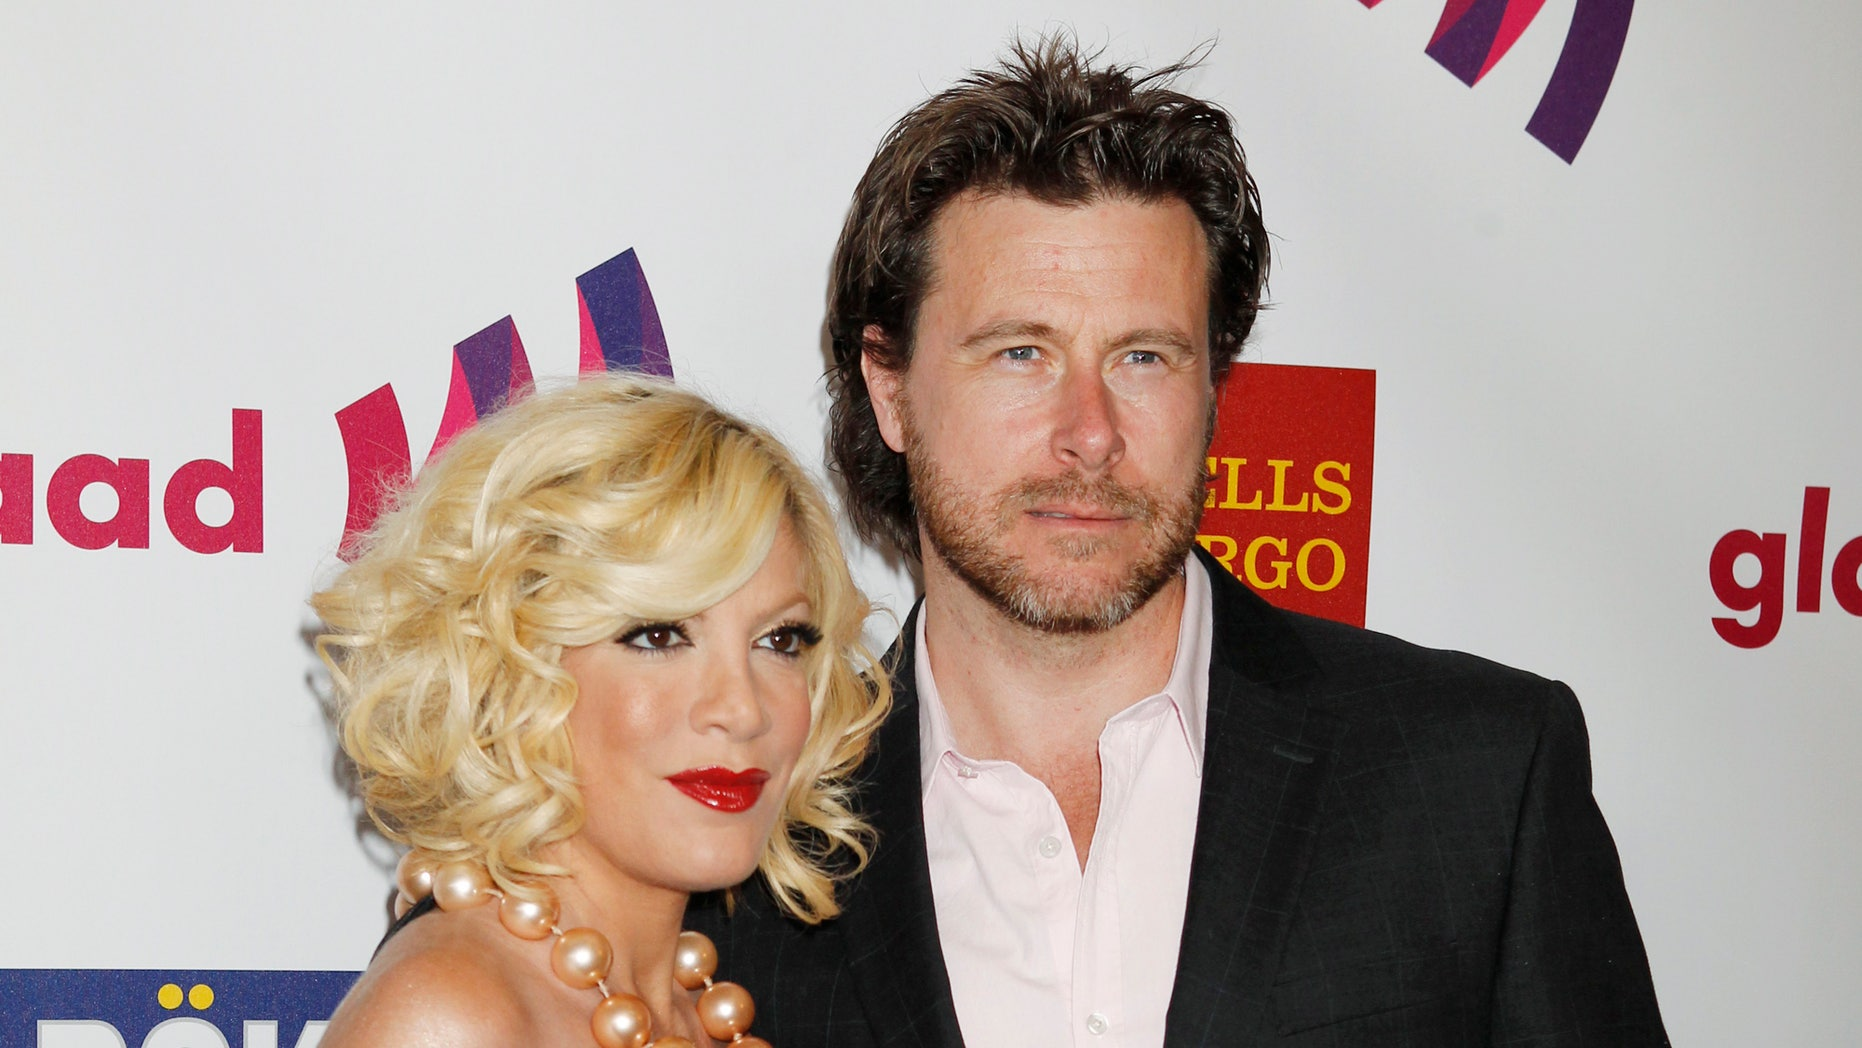 April 10, 2011. Actress Tori Spelling and husband Dean McDermott arrive at the 22nd annual Gay and Lesbian Alliance Against Defamation (GLAAD) Media Awards in Los Angeles, California.